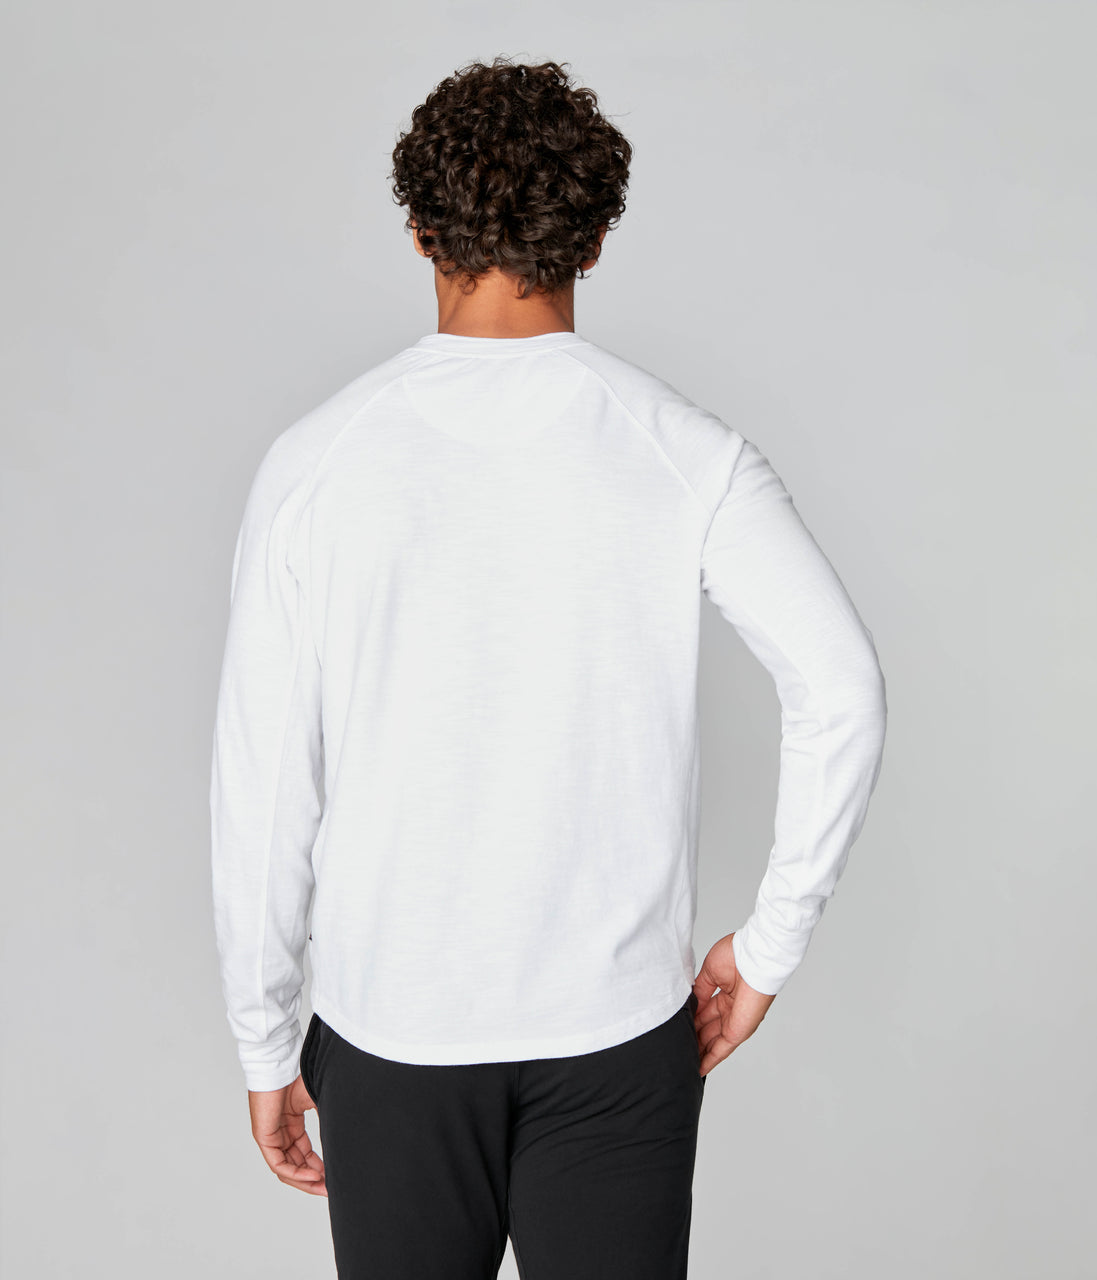 Legend Henley in Black Marl Soft Slub - White - Good Man Brand - Legend Henley in Black Marl Soft Slub - White